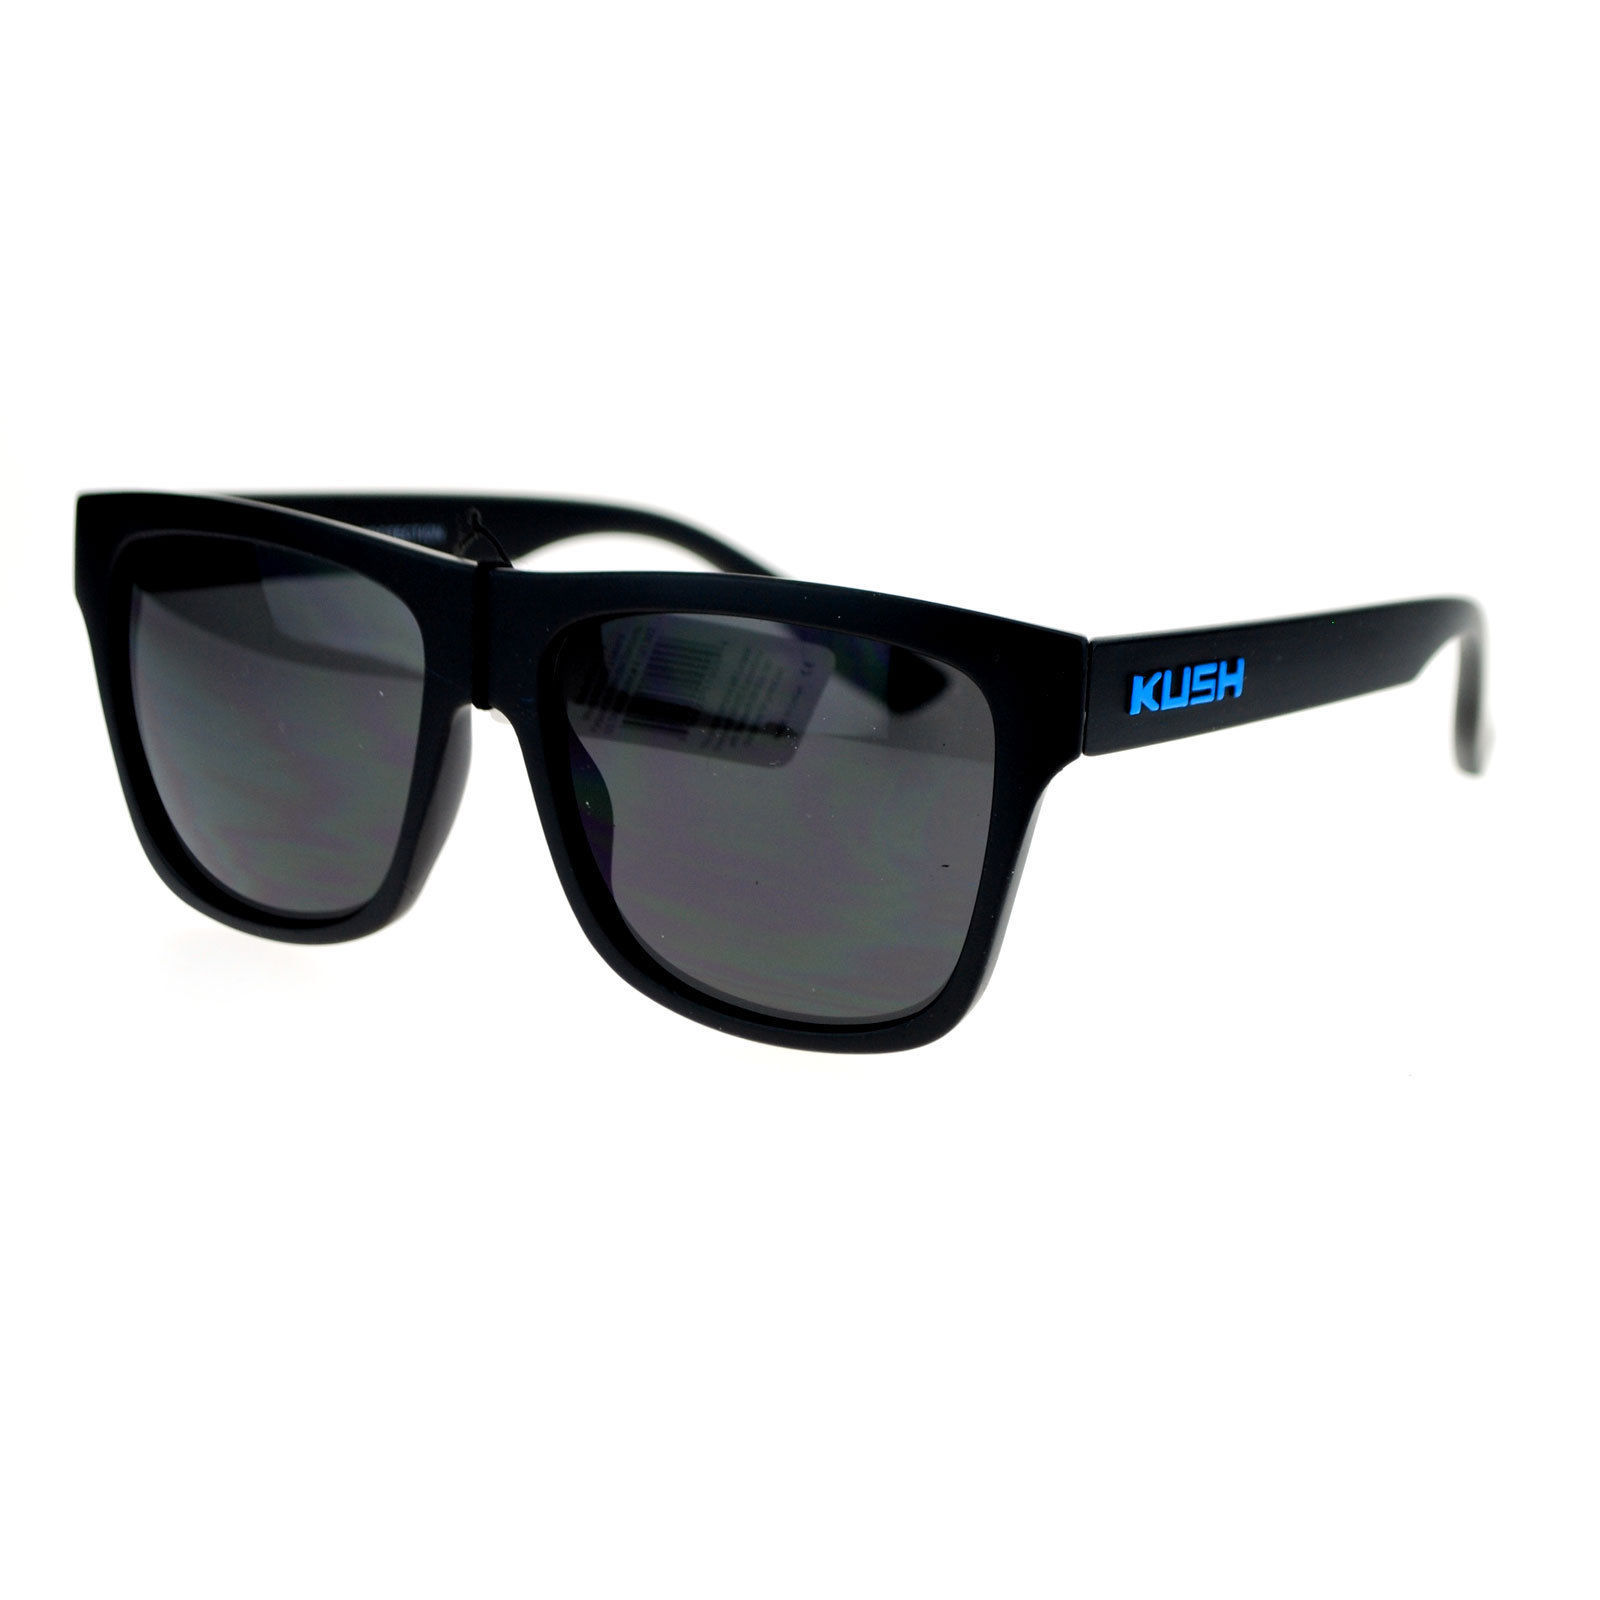 4b836231a KUSH Sunglasses Matte Black Square Frame Unisex Fashion Shades